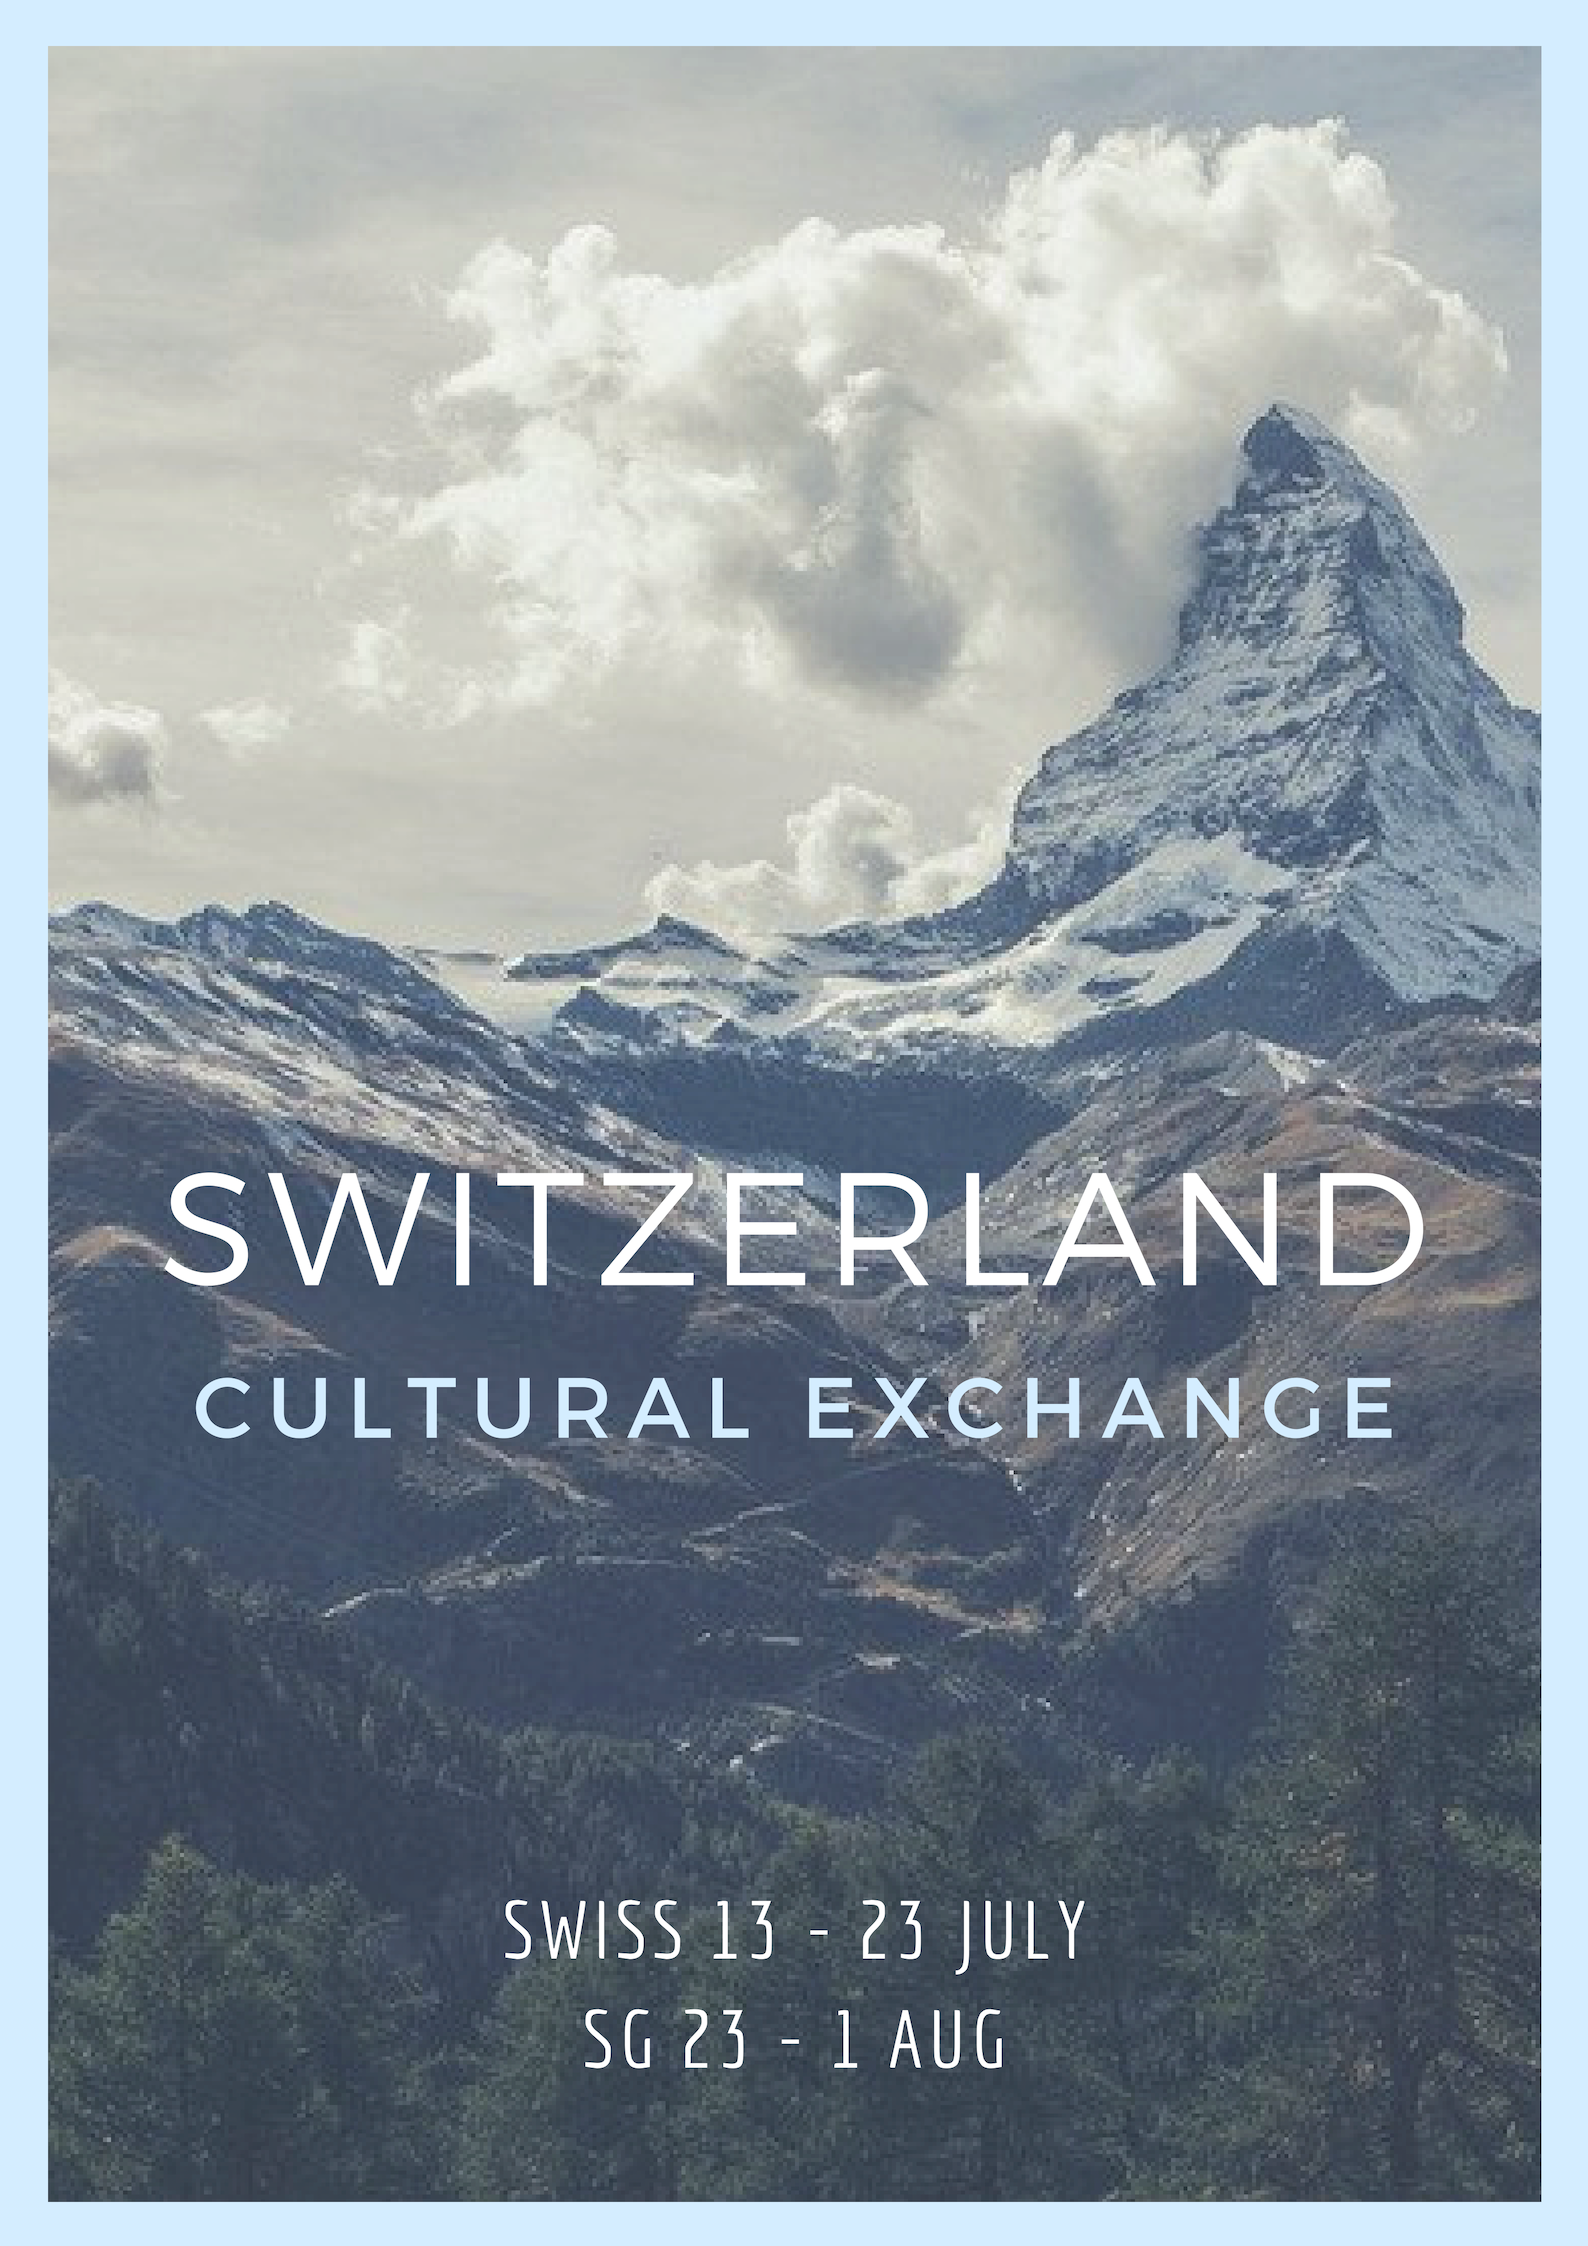 Switzerland Cultural Exchange